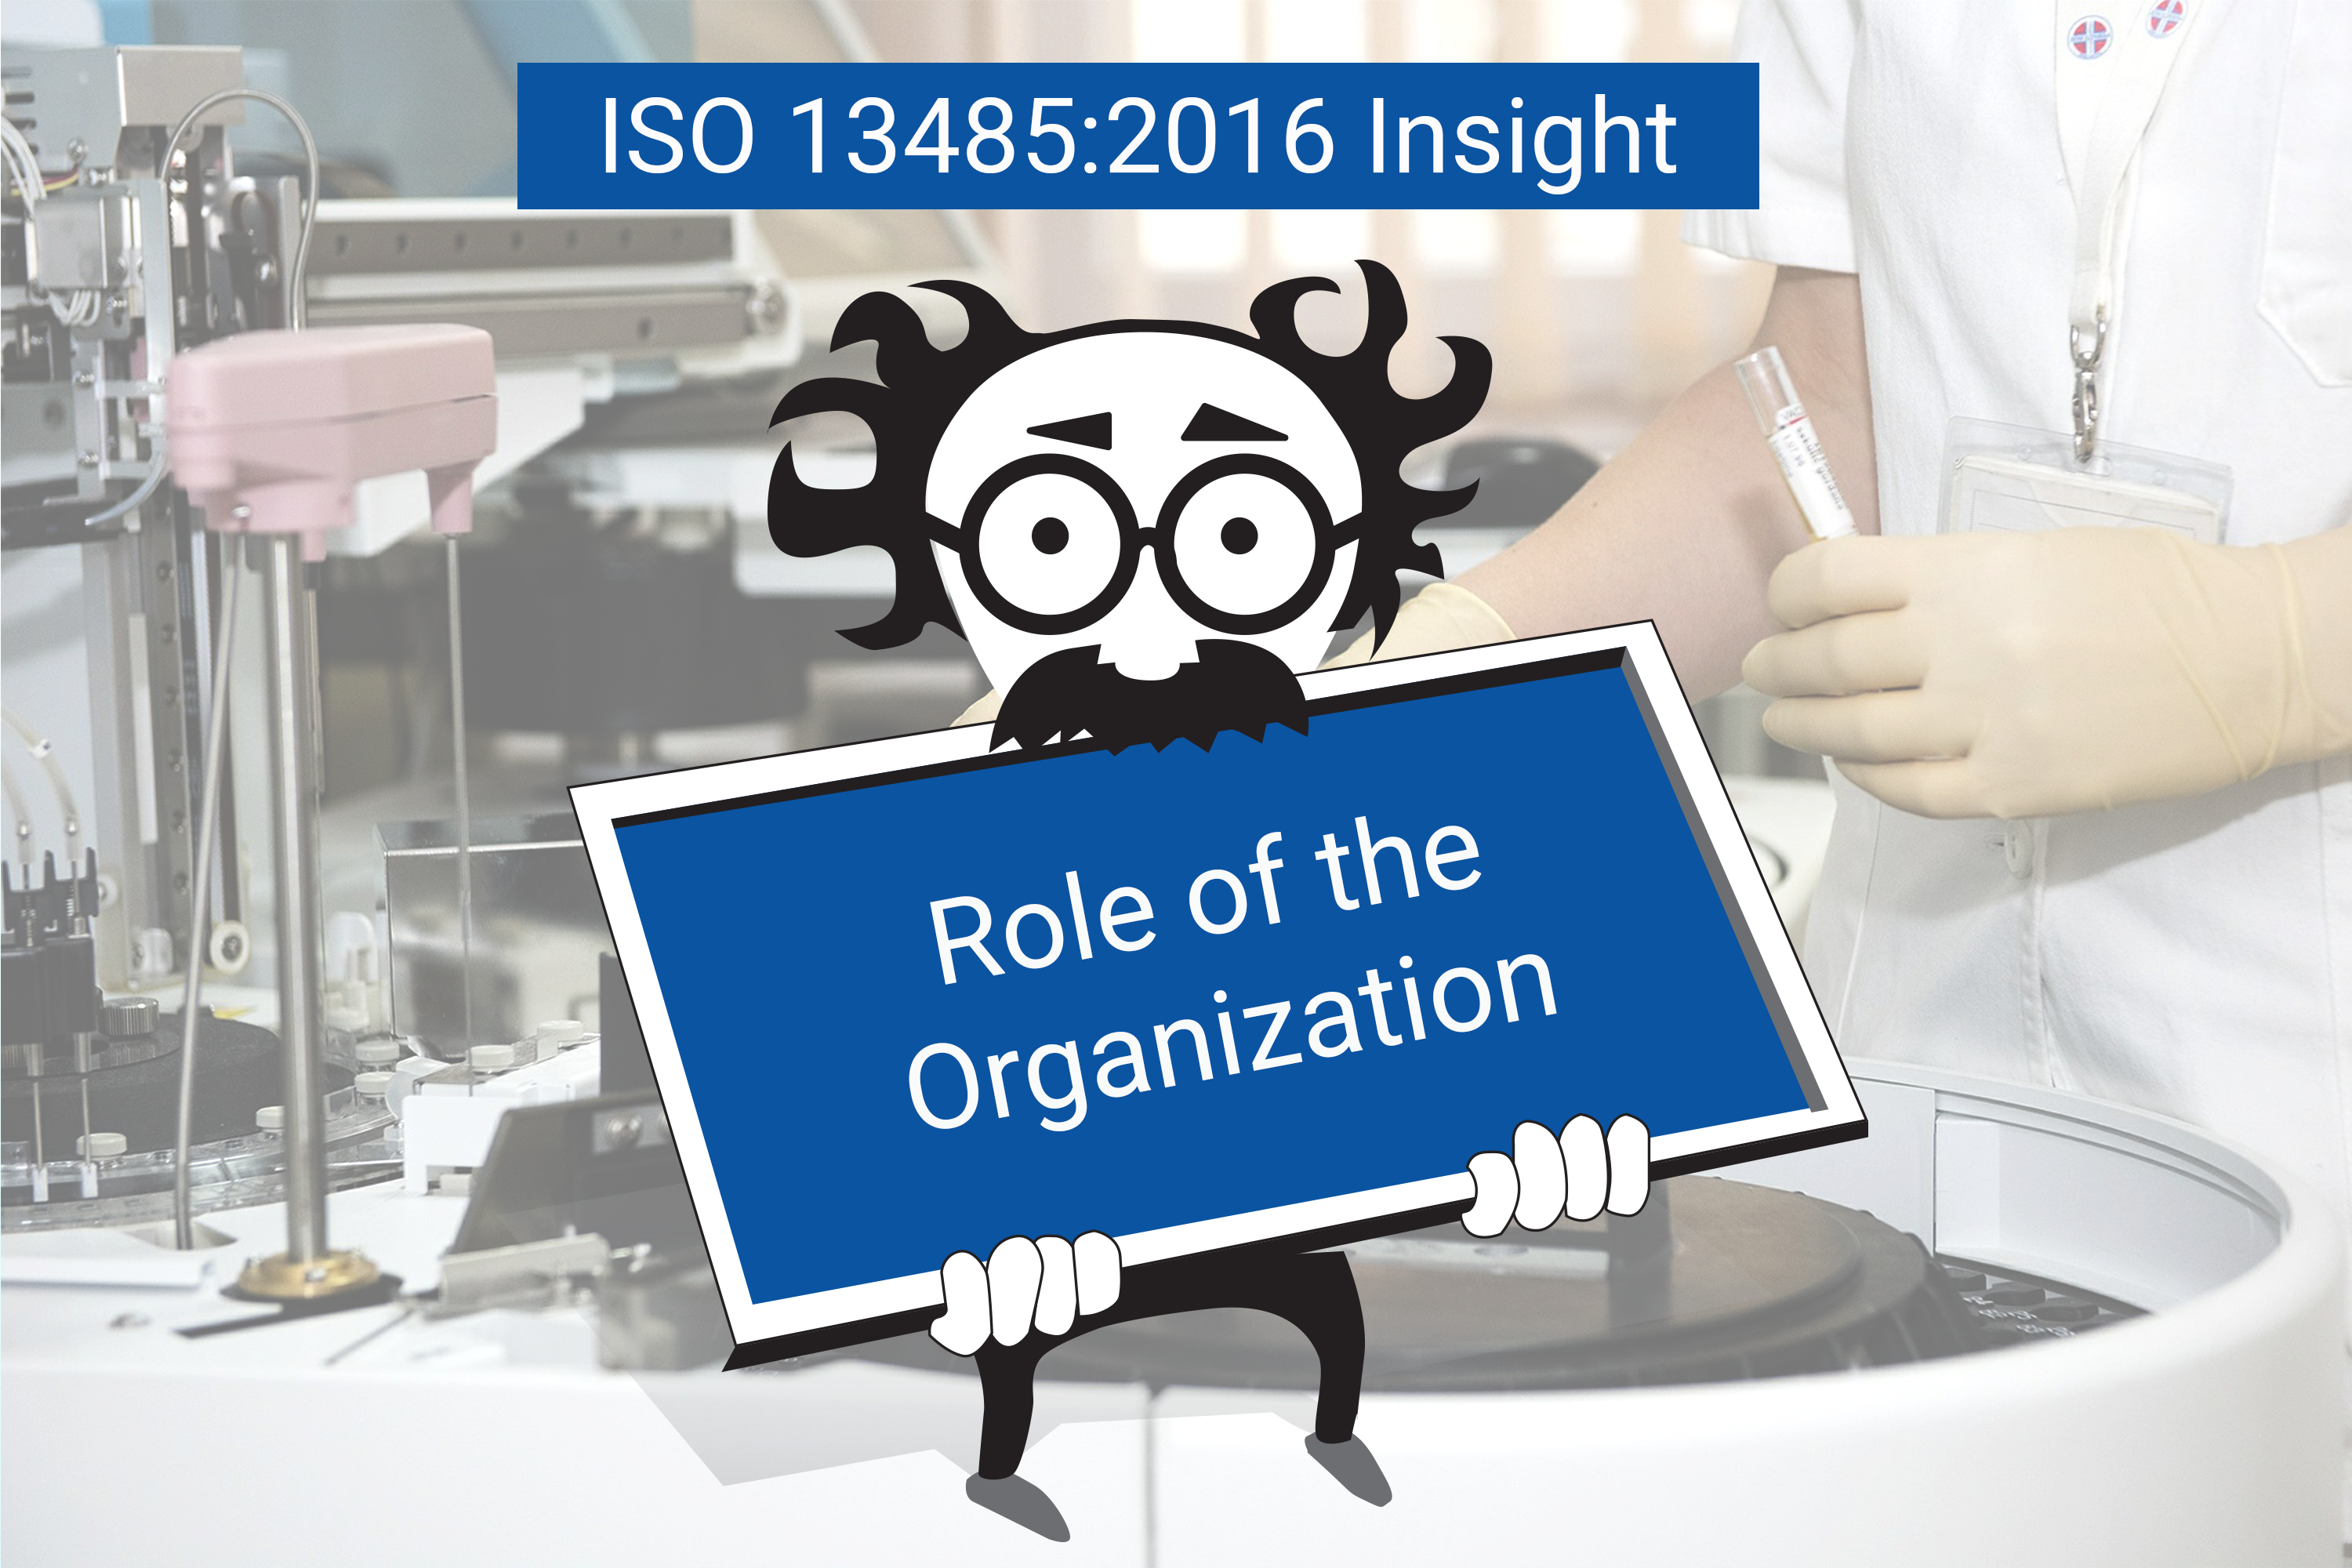 ISO 13485:2016 Insight: Role of the Organization